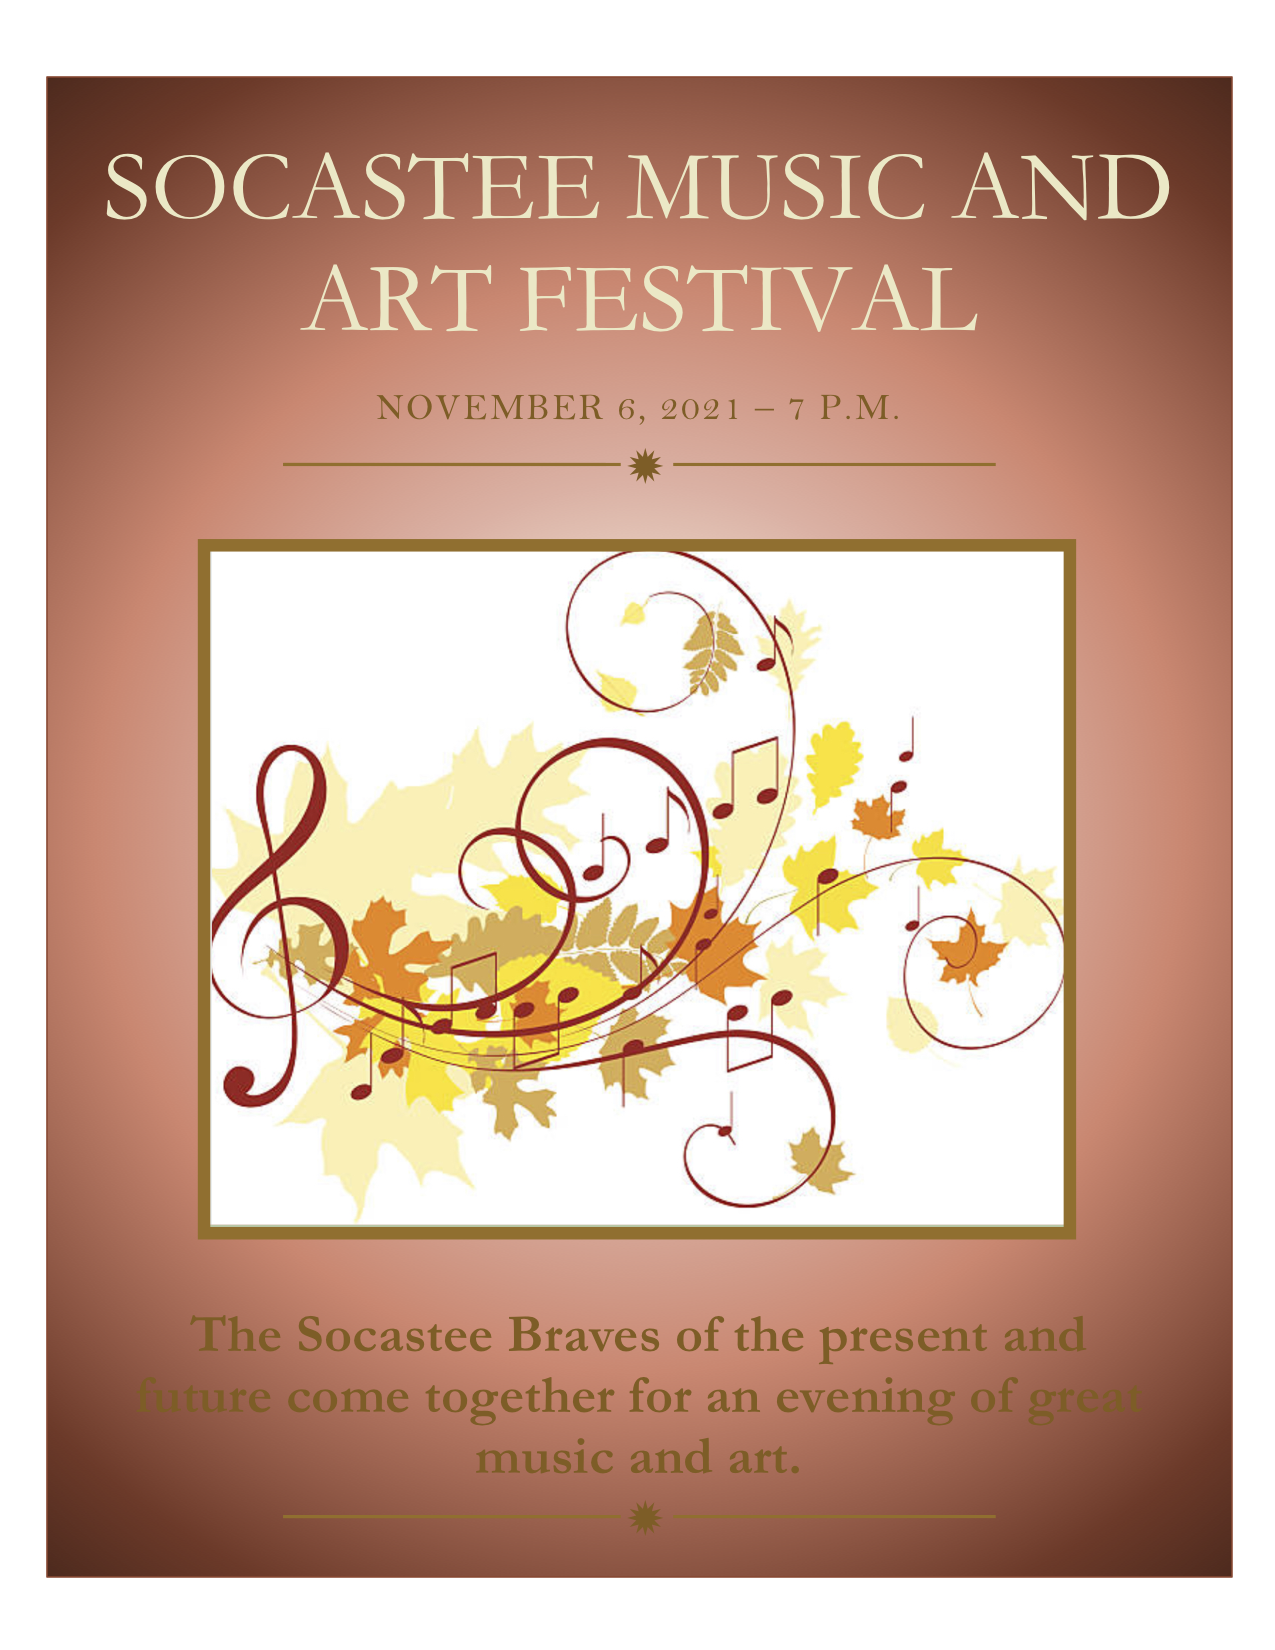 Socastee Music and Art Festival Braves of the Past, Present & Future on Nov 06, 19:00@SHS Football Stadium - Buy tickets and Get information on socasteeperformingarts.com